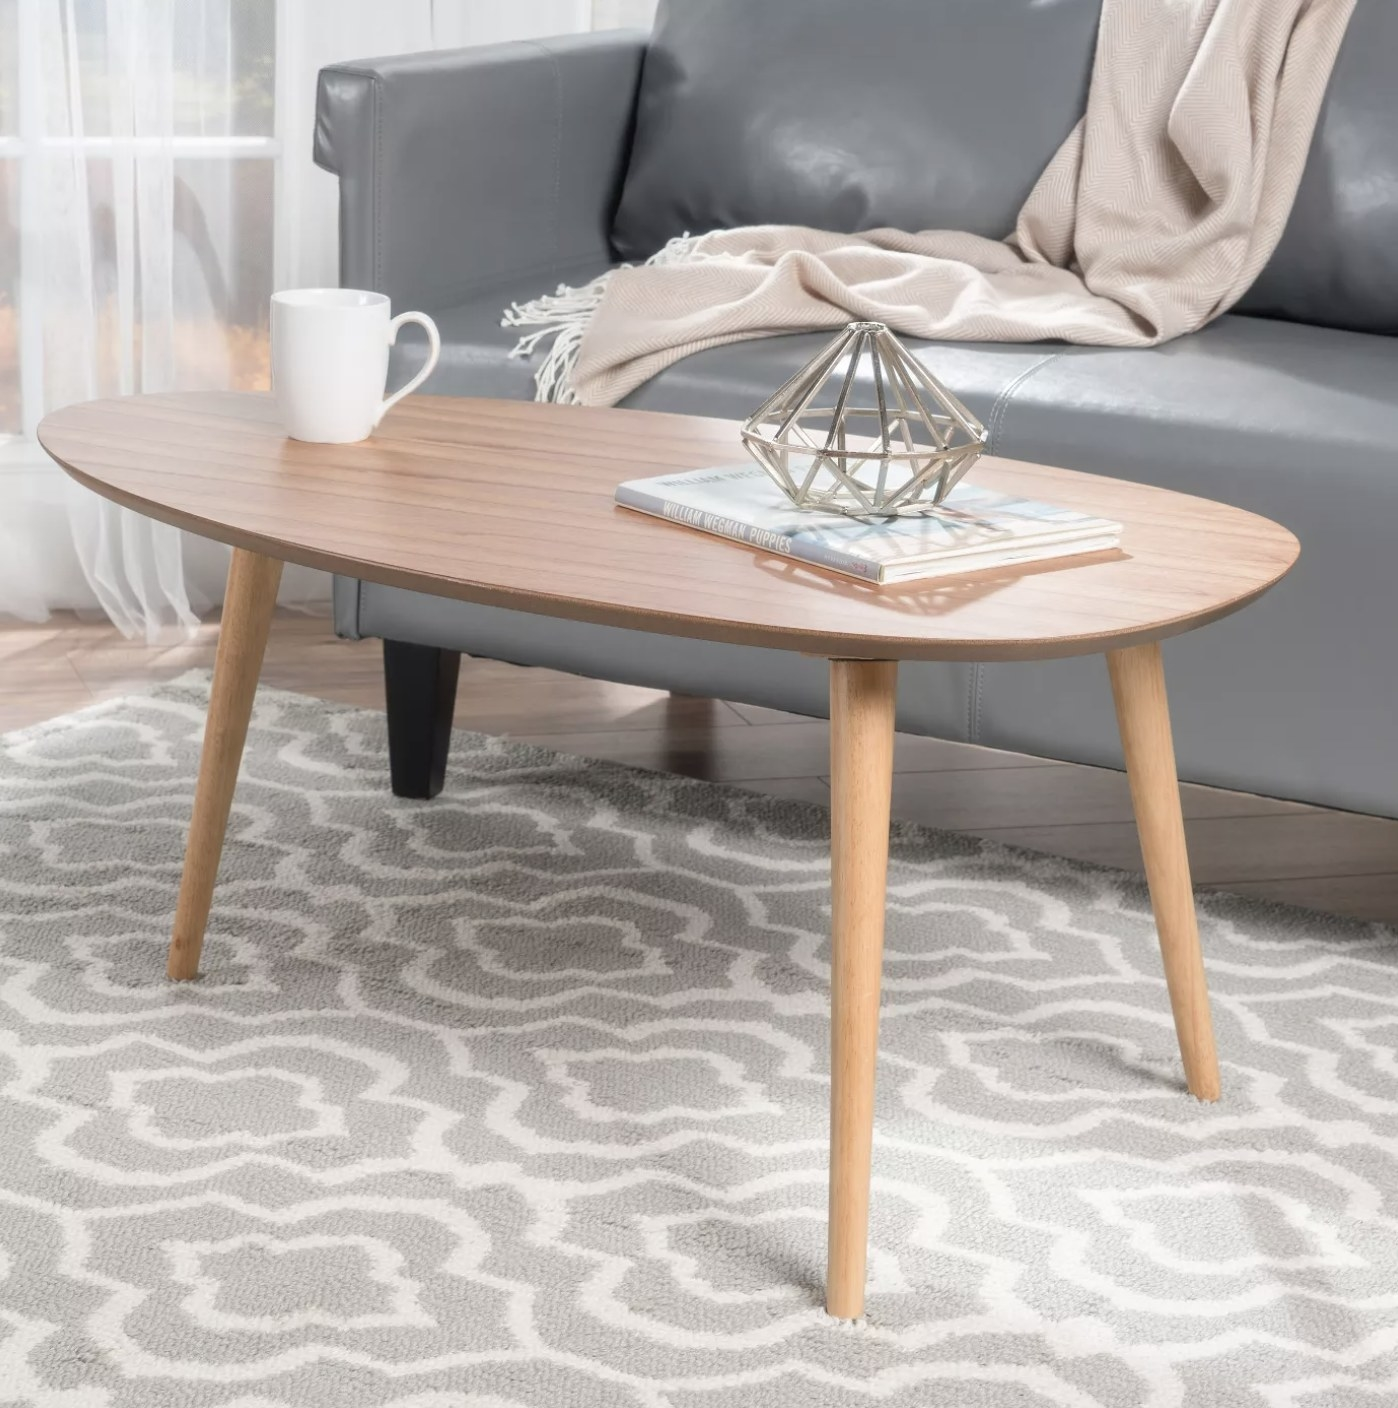 The light wood oval coffee table